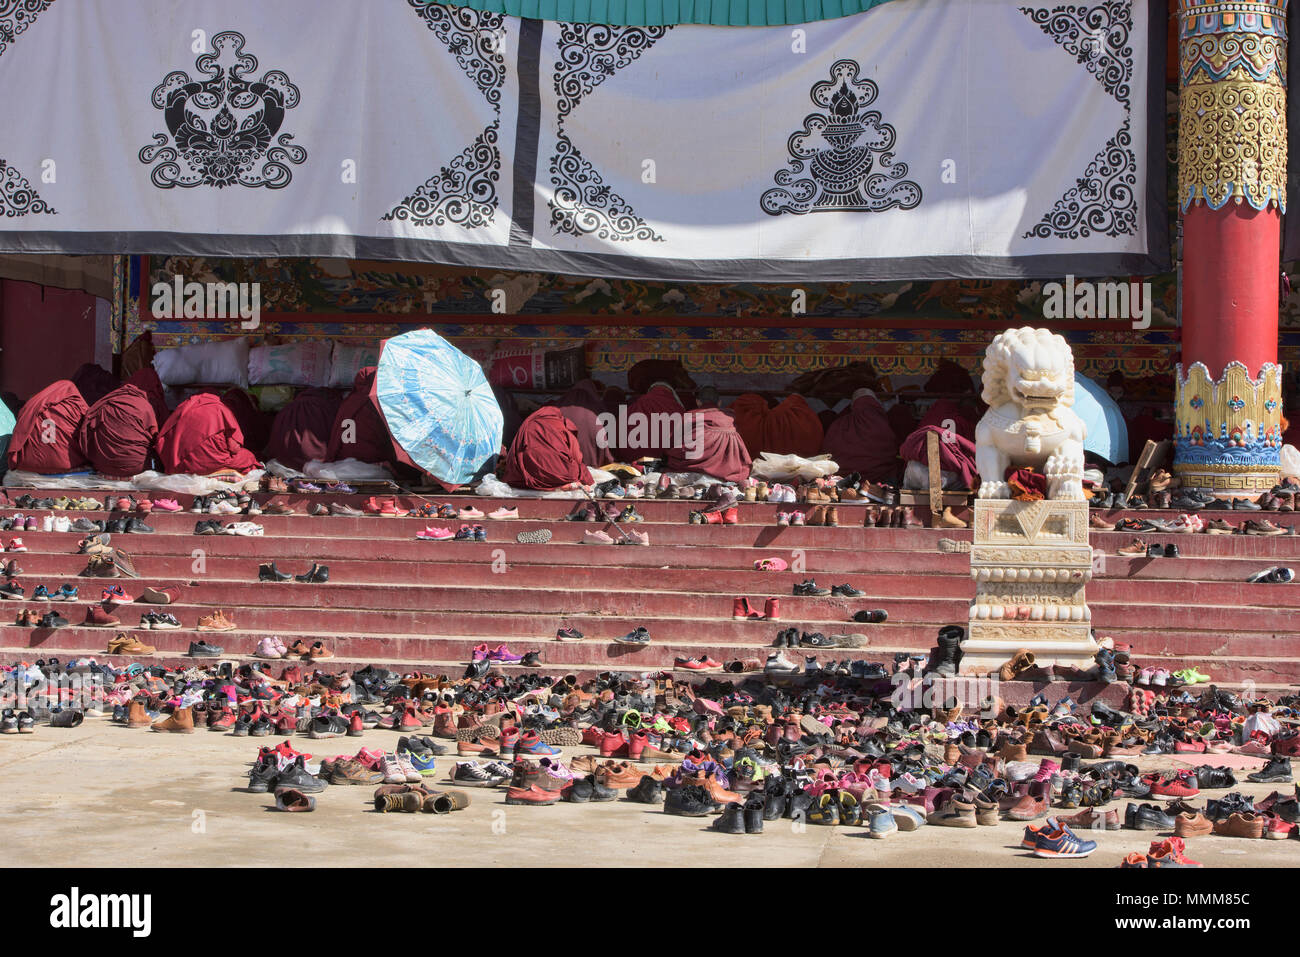 Collection of shoes outside the monastery, Yarchen Gar, Sichuan, China - Stock Image